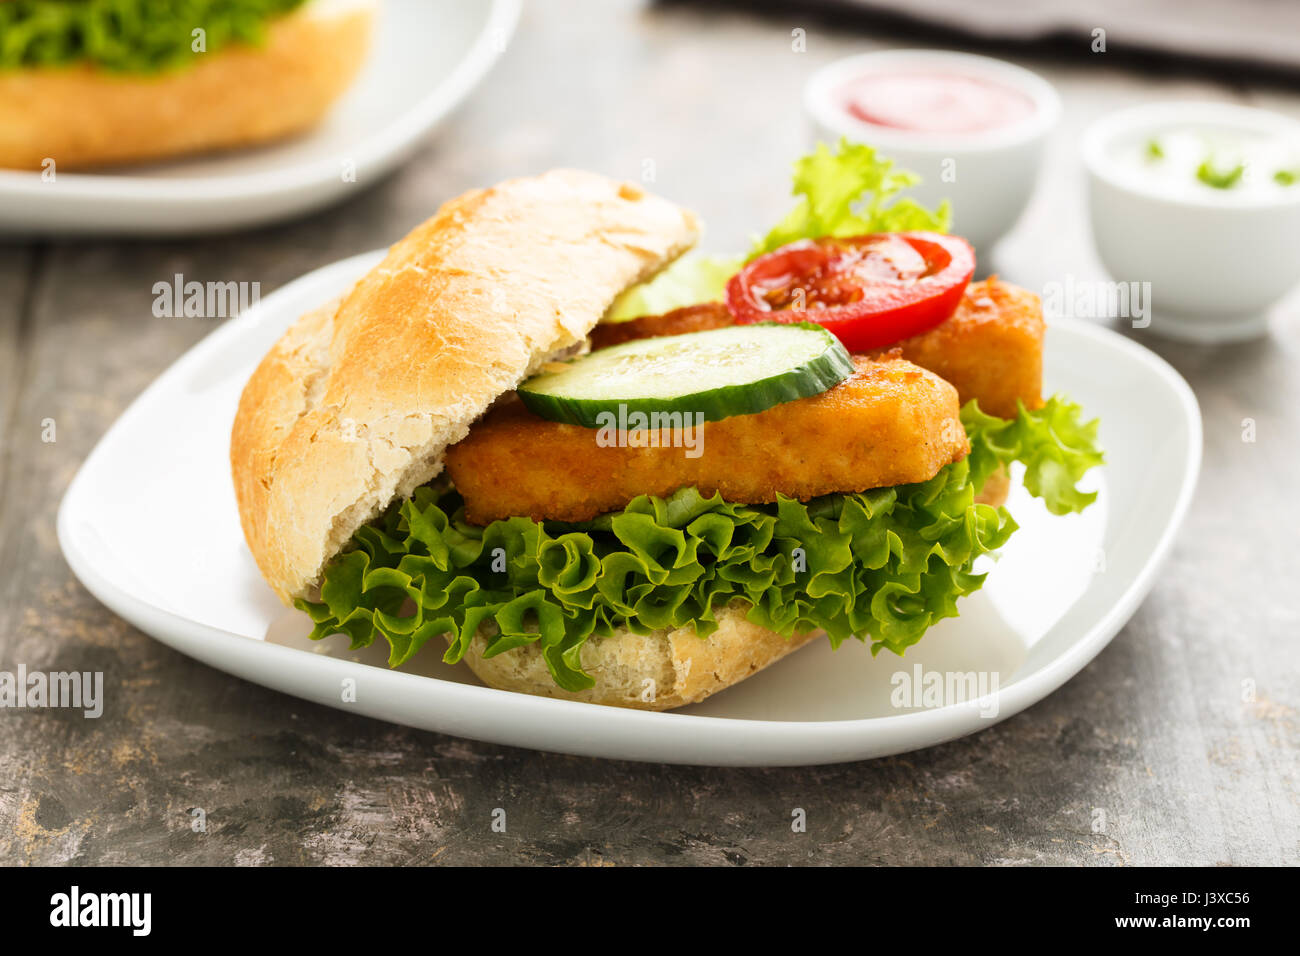 Hearty fish fillet sandwich with salad and veggies. - Stock Image